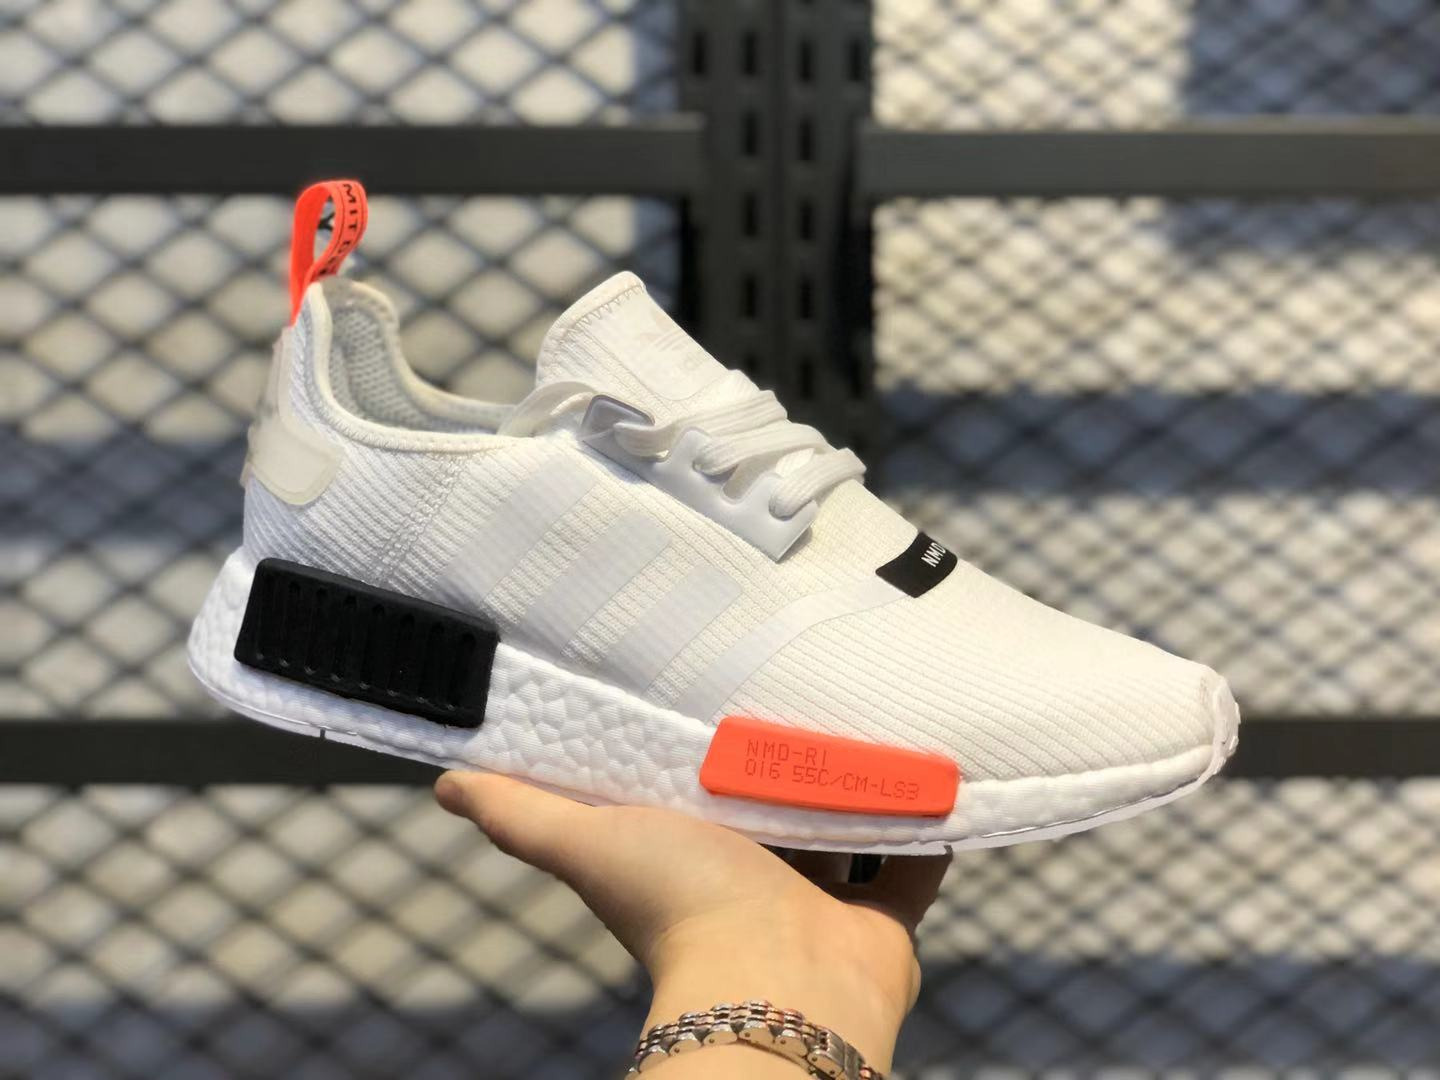 2020 Buy Adidas NMD R1 Cloud White/Core Black-Lush Red Running Shoes TS1901